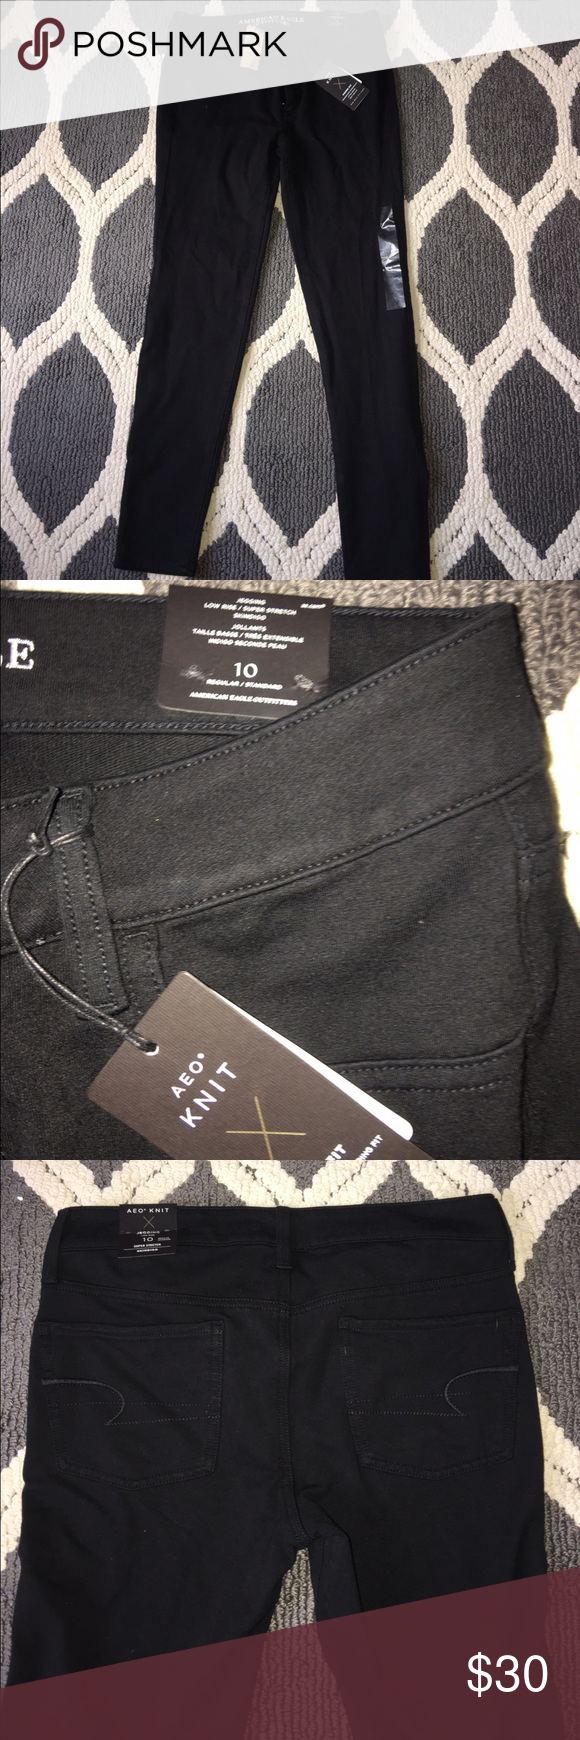 Brand new American eagle black skinny jeggings New! Size 10. Jegging / knit material American Eagle Outfitters Jeans Skinny